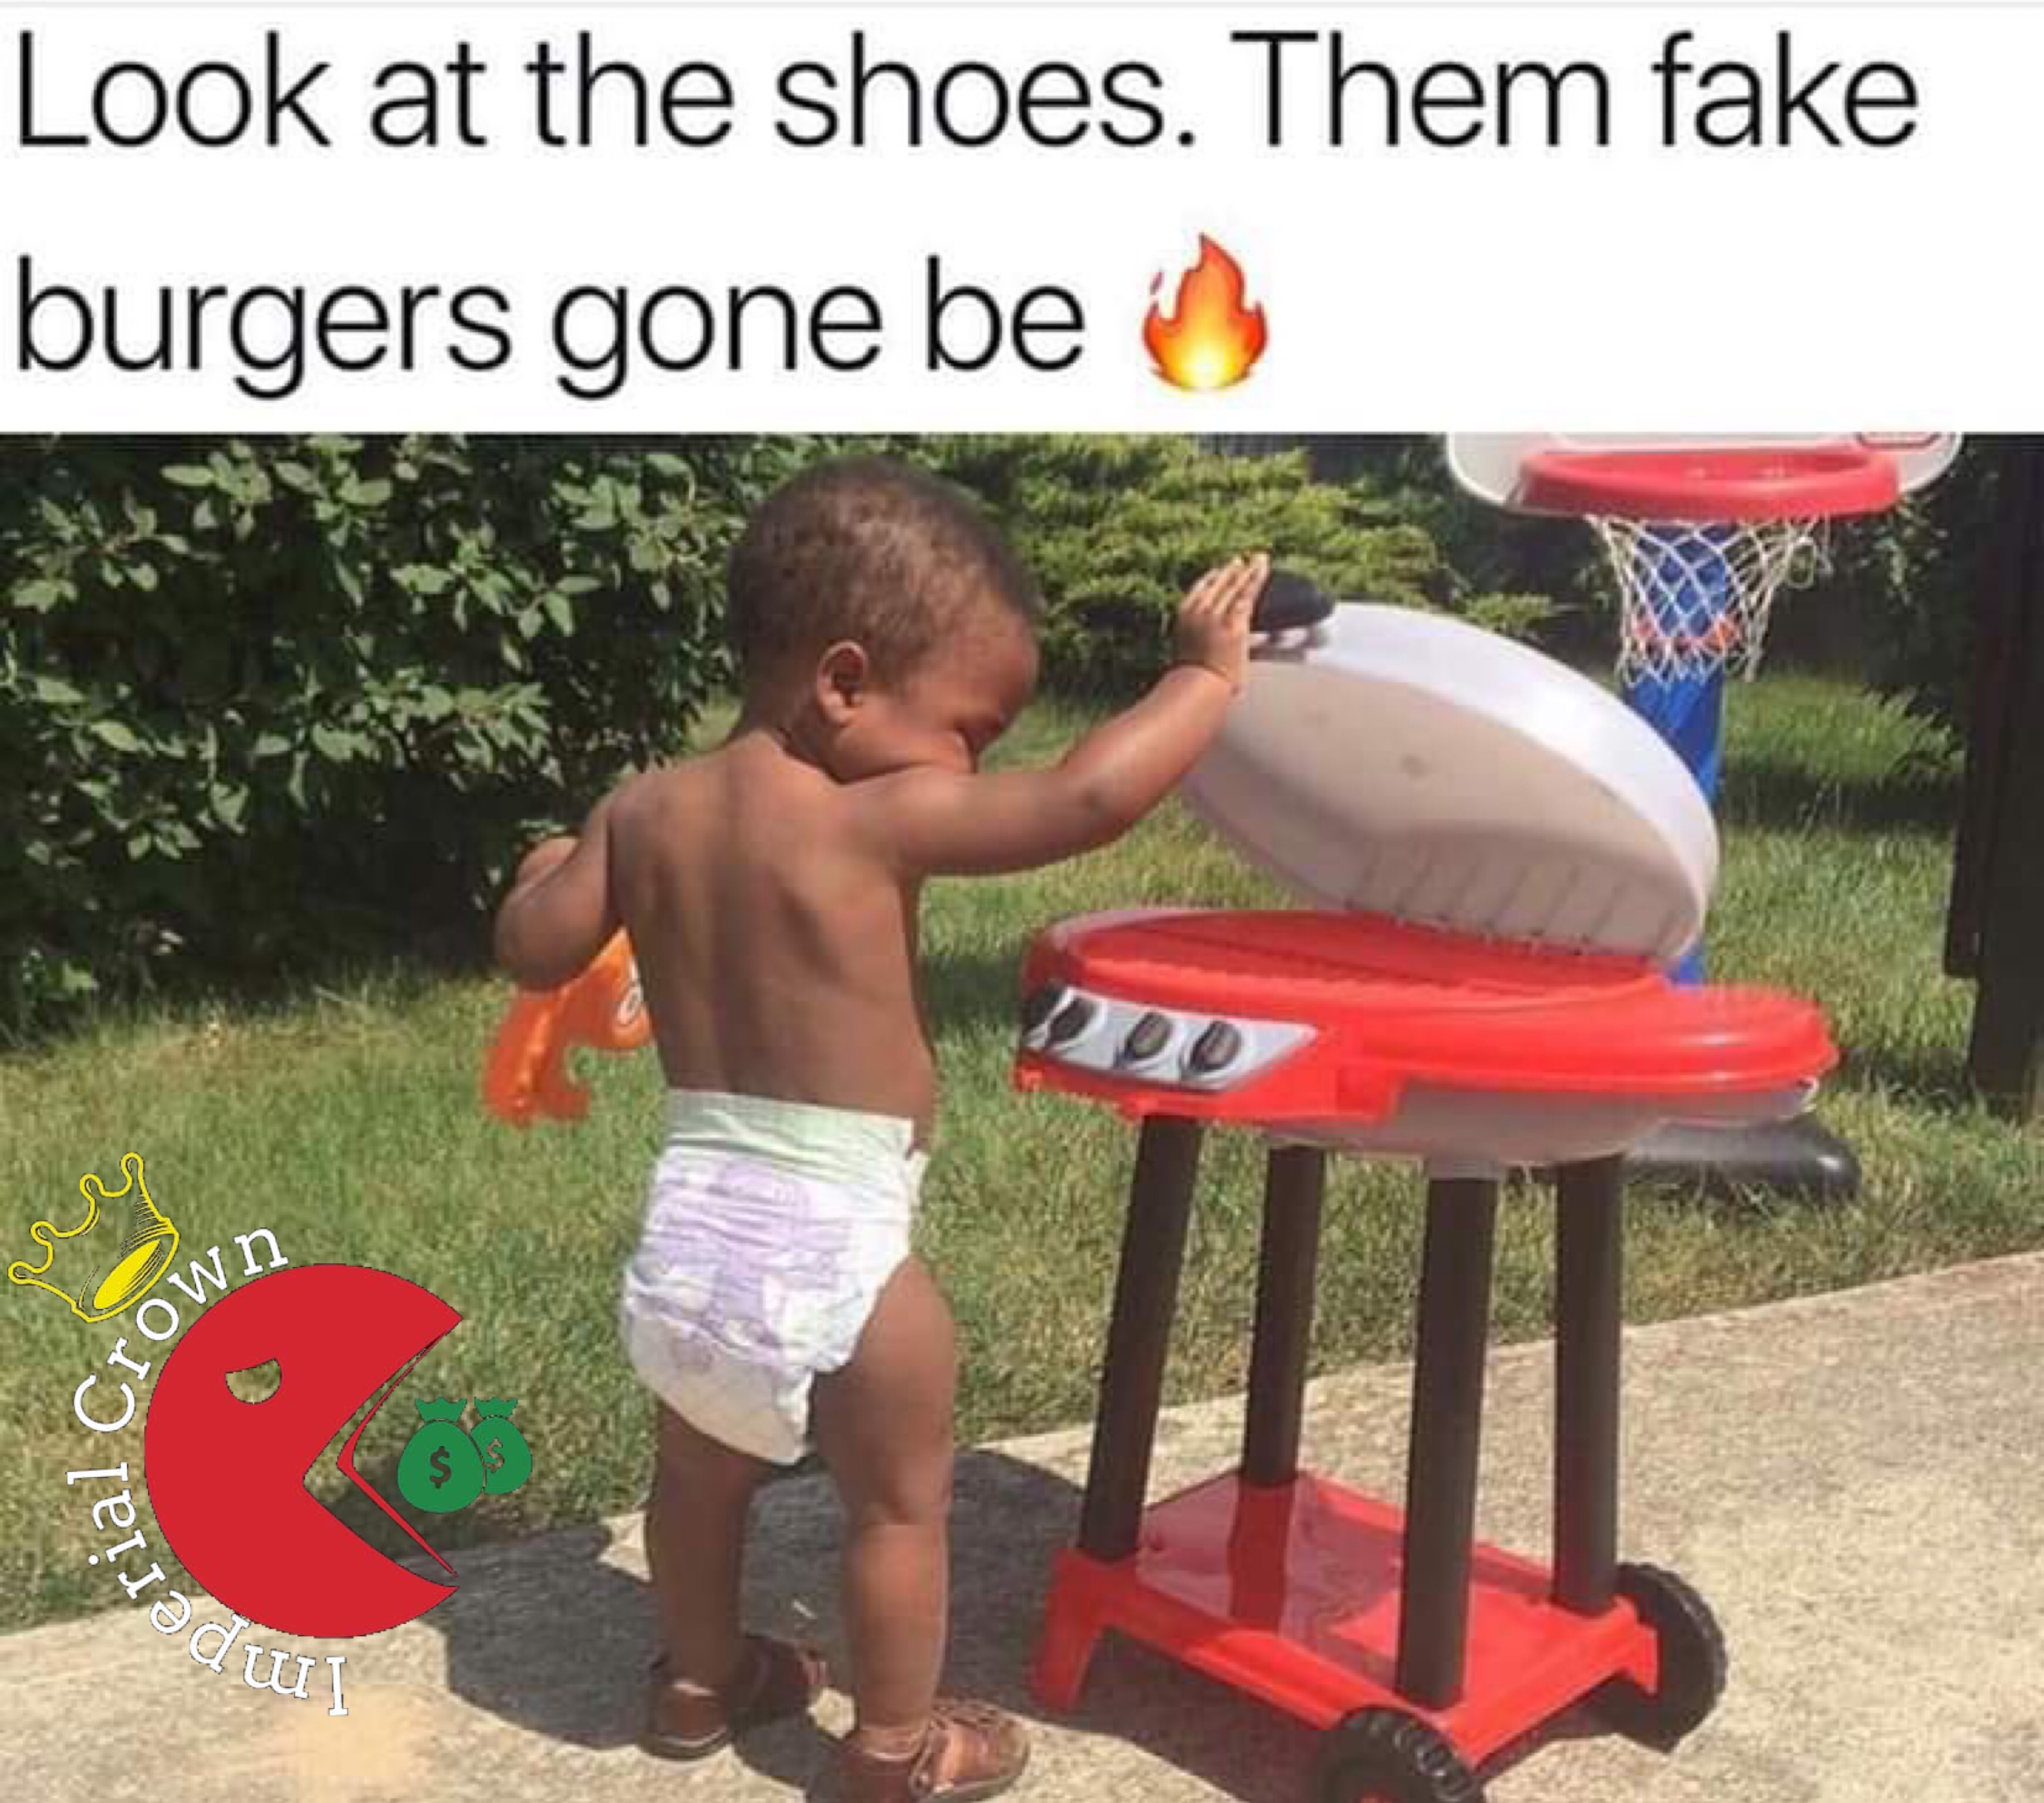 Look at the shoes, them fake burgers gone be